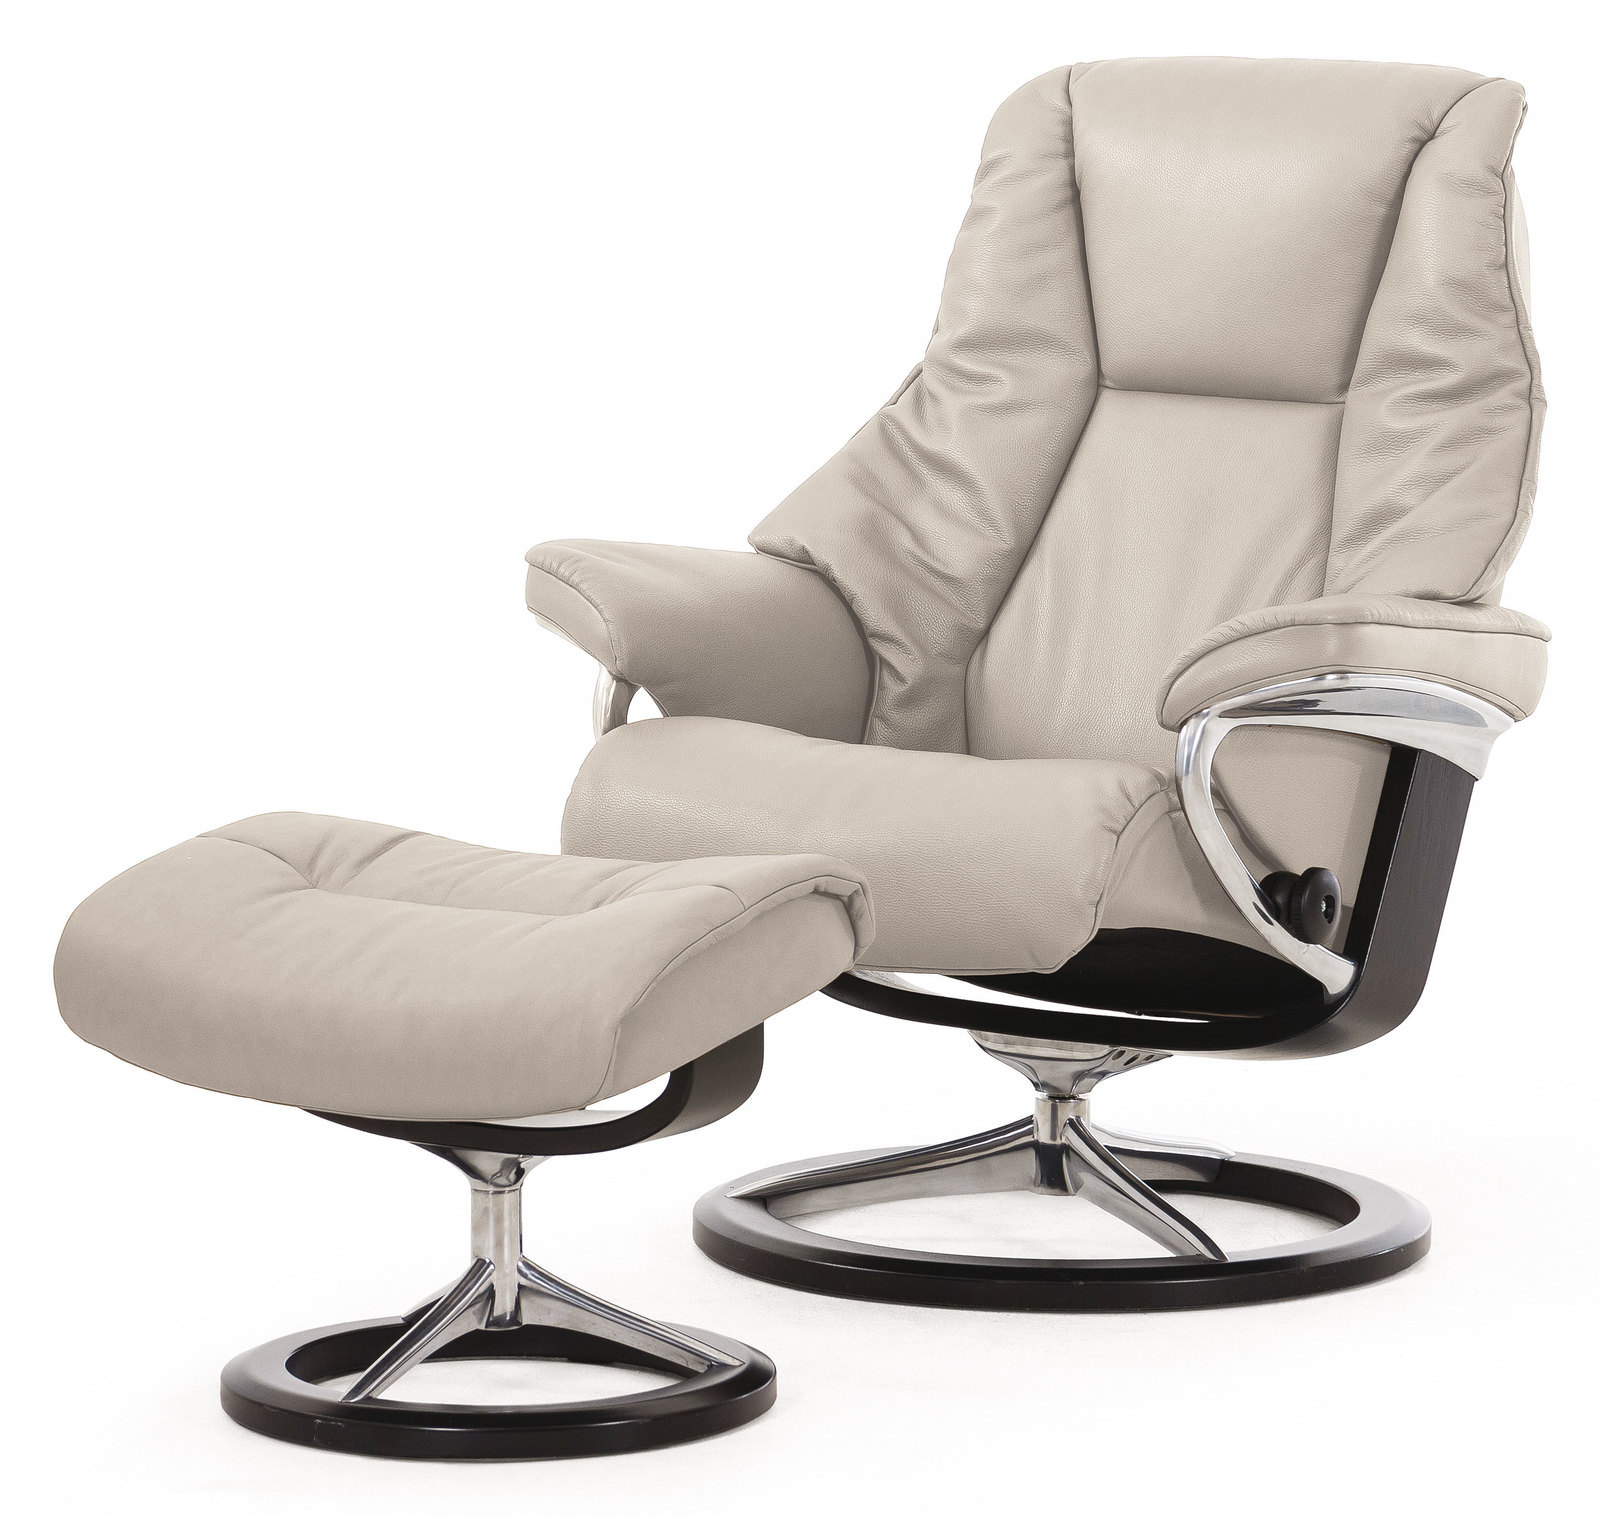 Stressless Sessel Massagesessel Stressless Sessel Schmal Sillones Reclinables C Modos